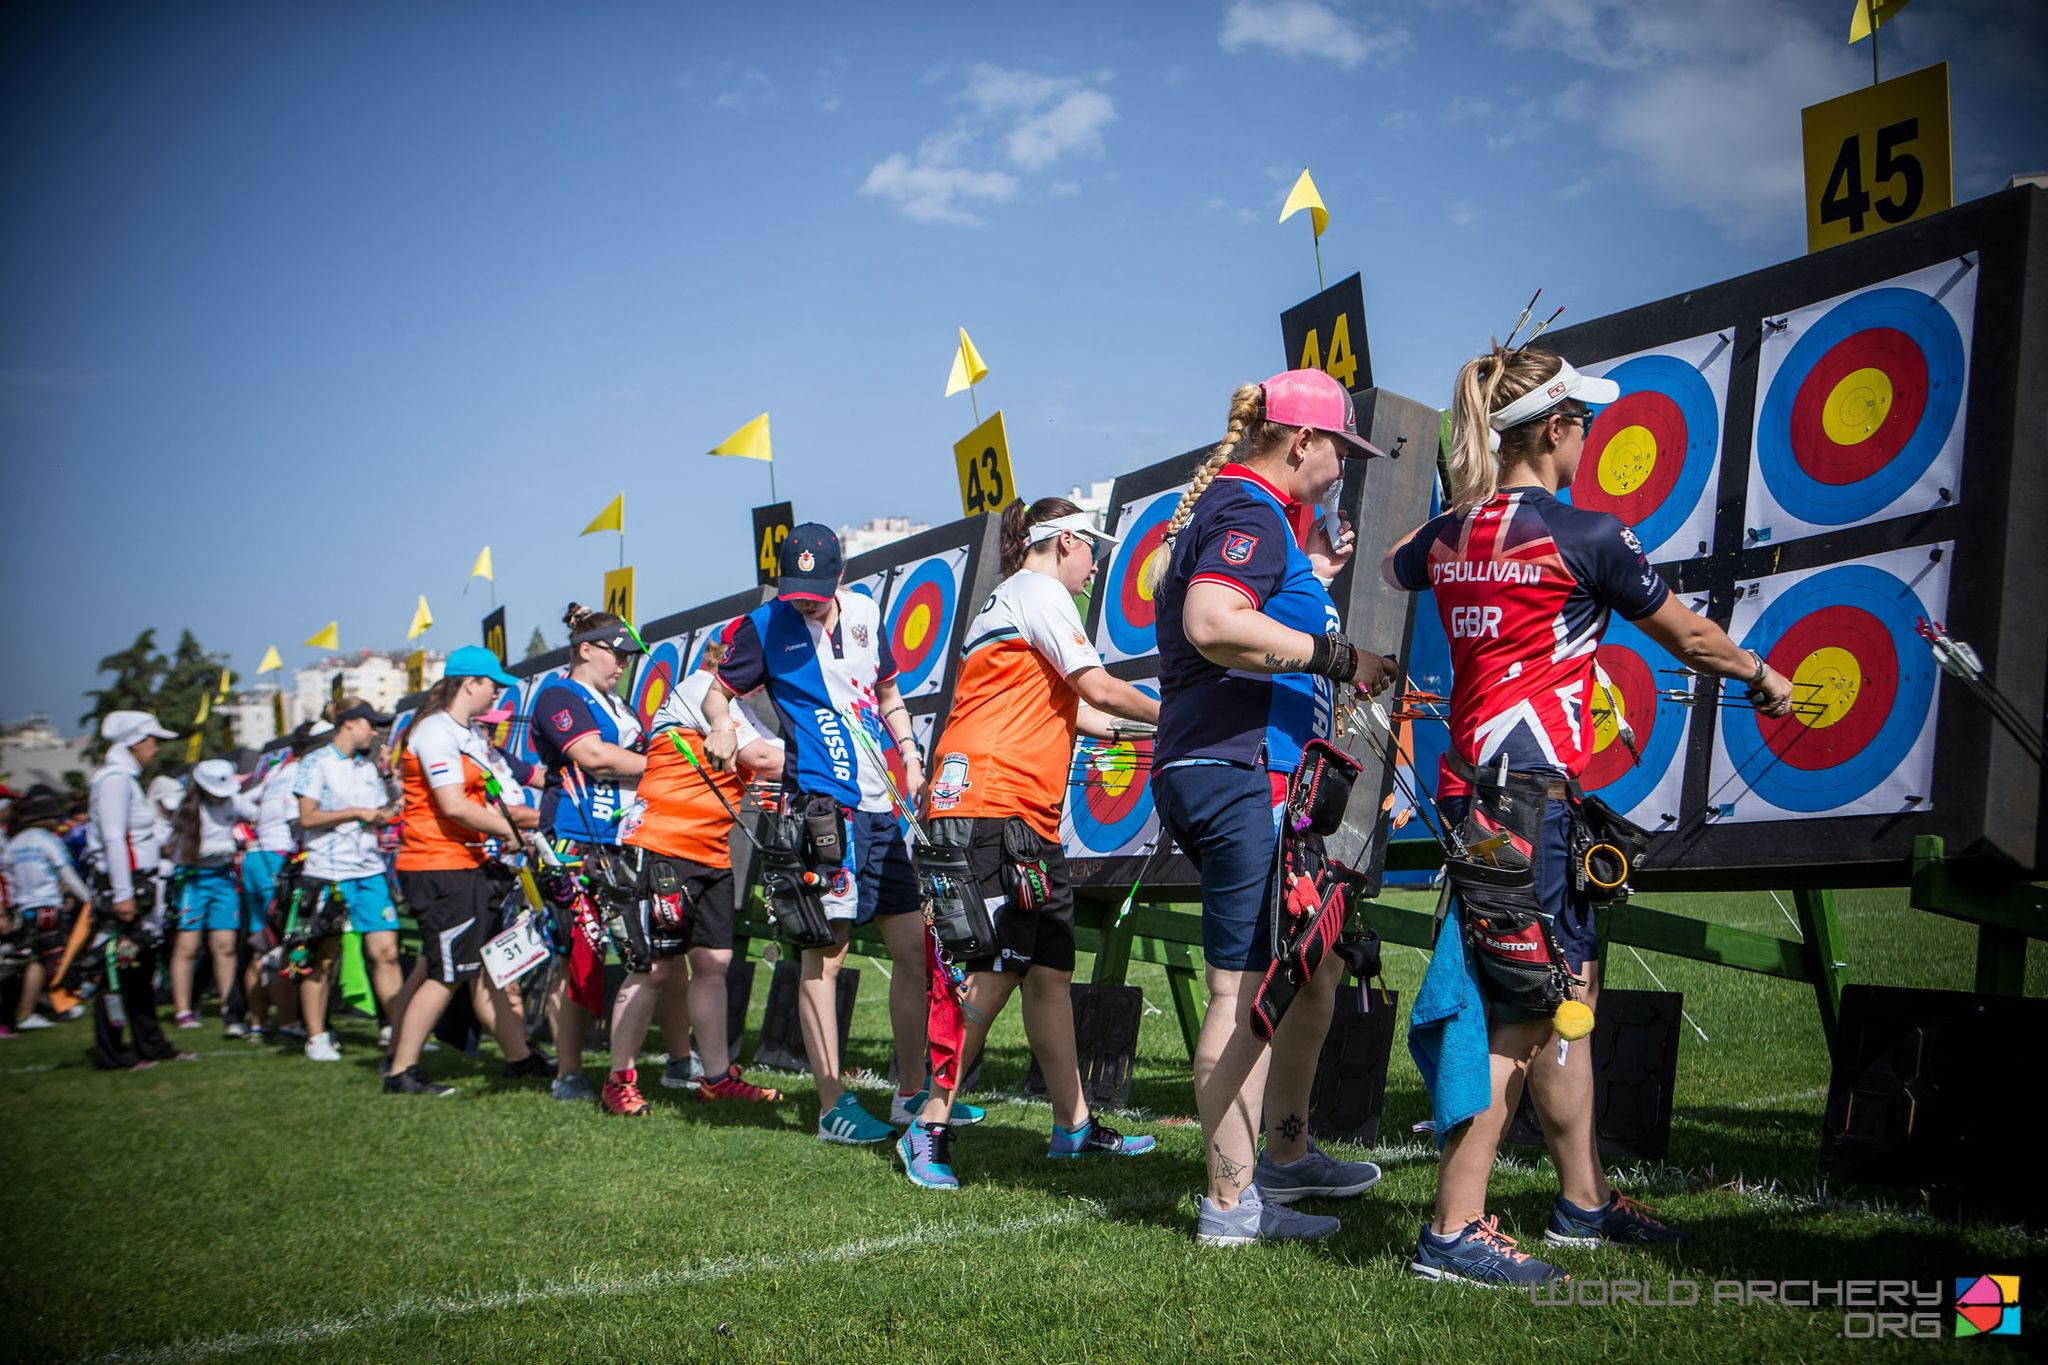 A total of 383 athletes from 54 countries will take part in the third leg of the Archery World Cup that starts in Antalya, Turkey tomorrow ©World Archery